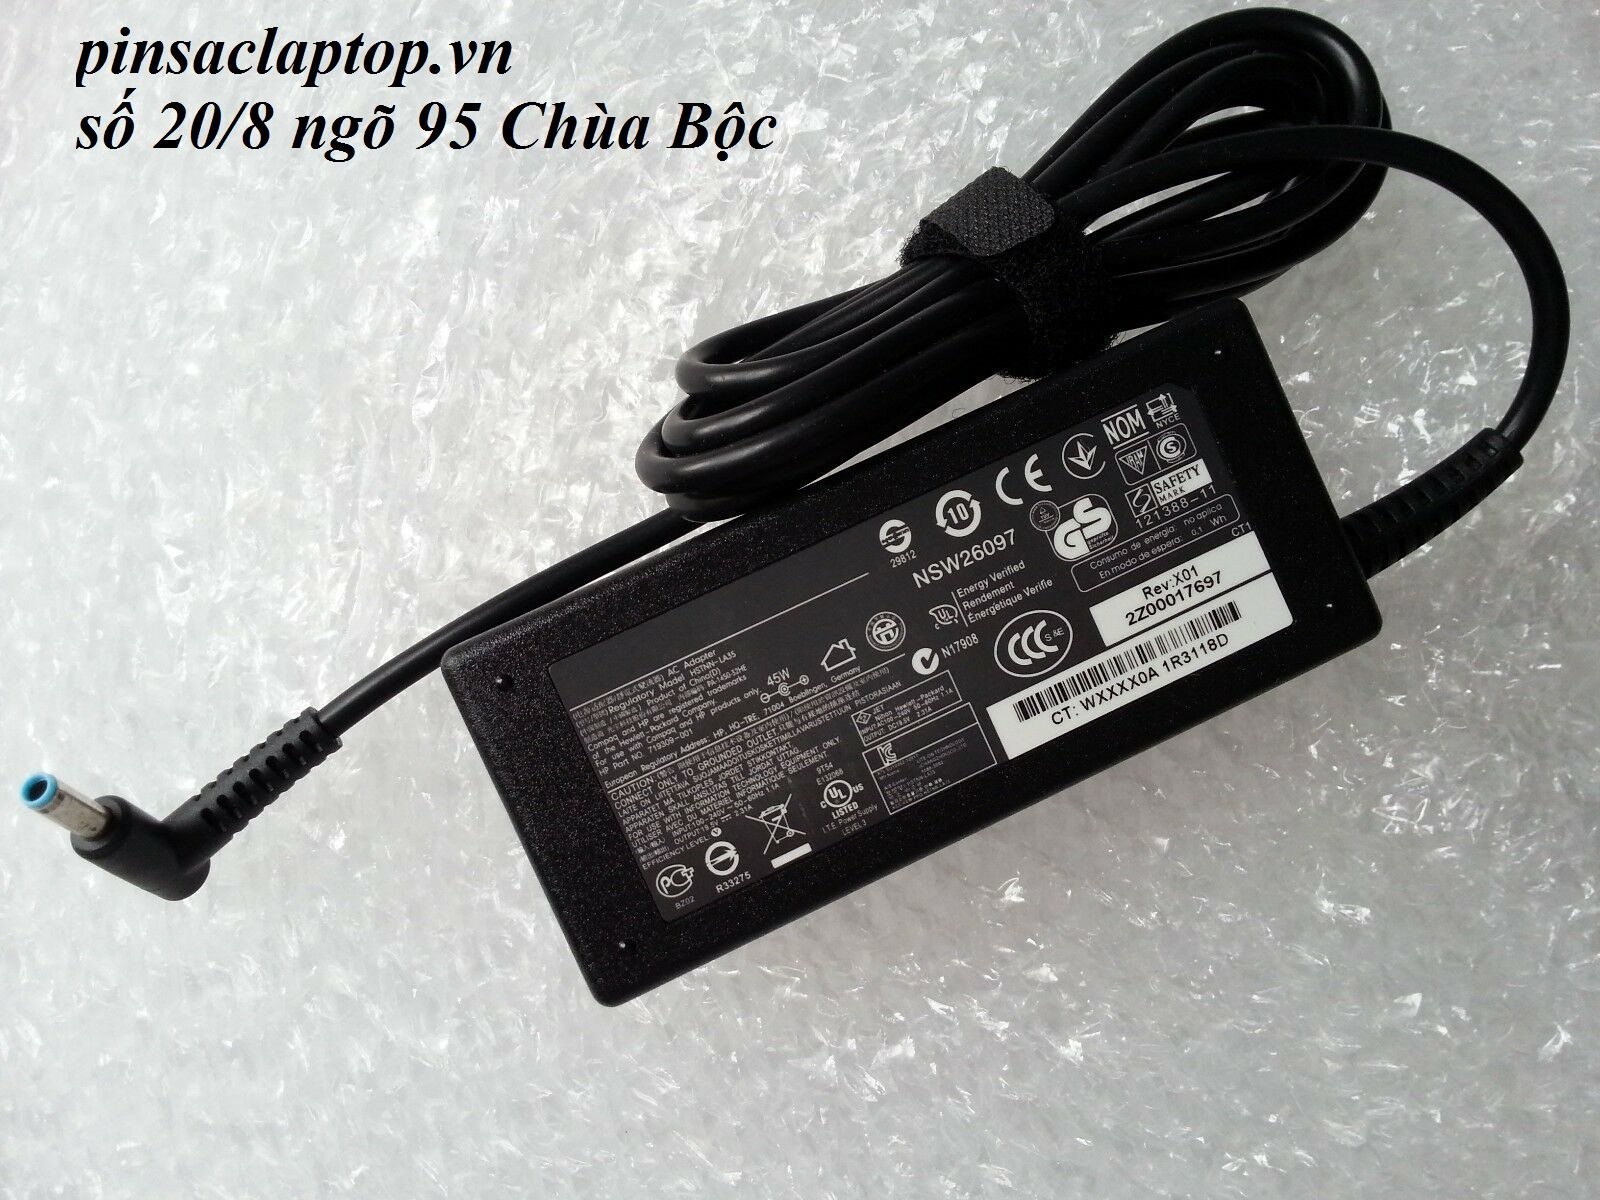 Sạc Adapter Laptop HP 15-da0012dx 15-da0014dx 15-da0032wm 15-da series